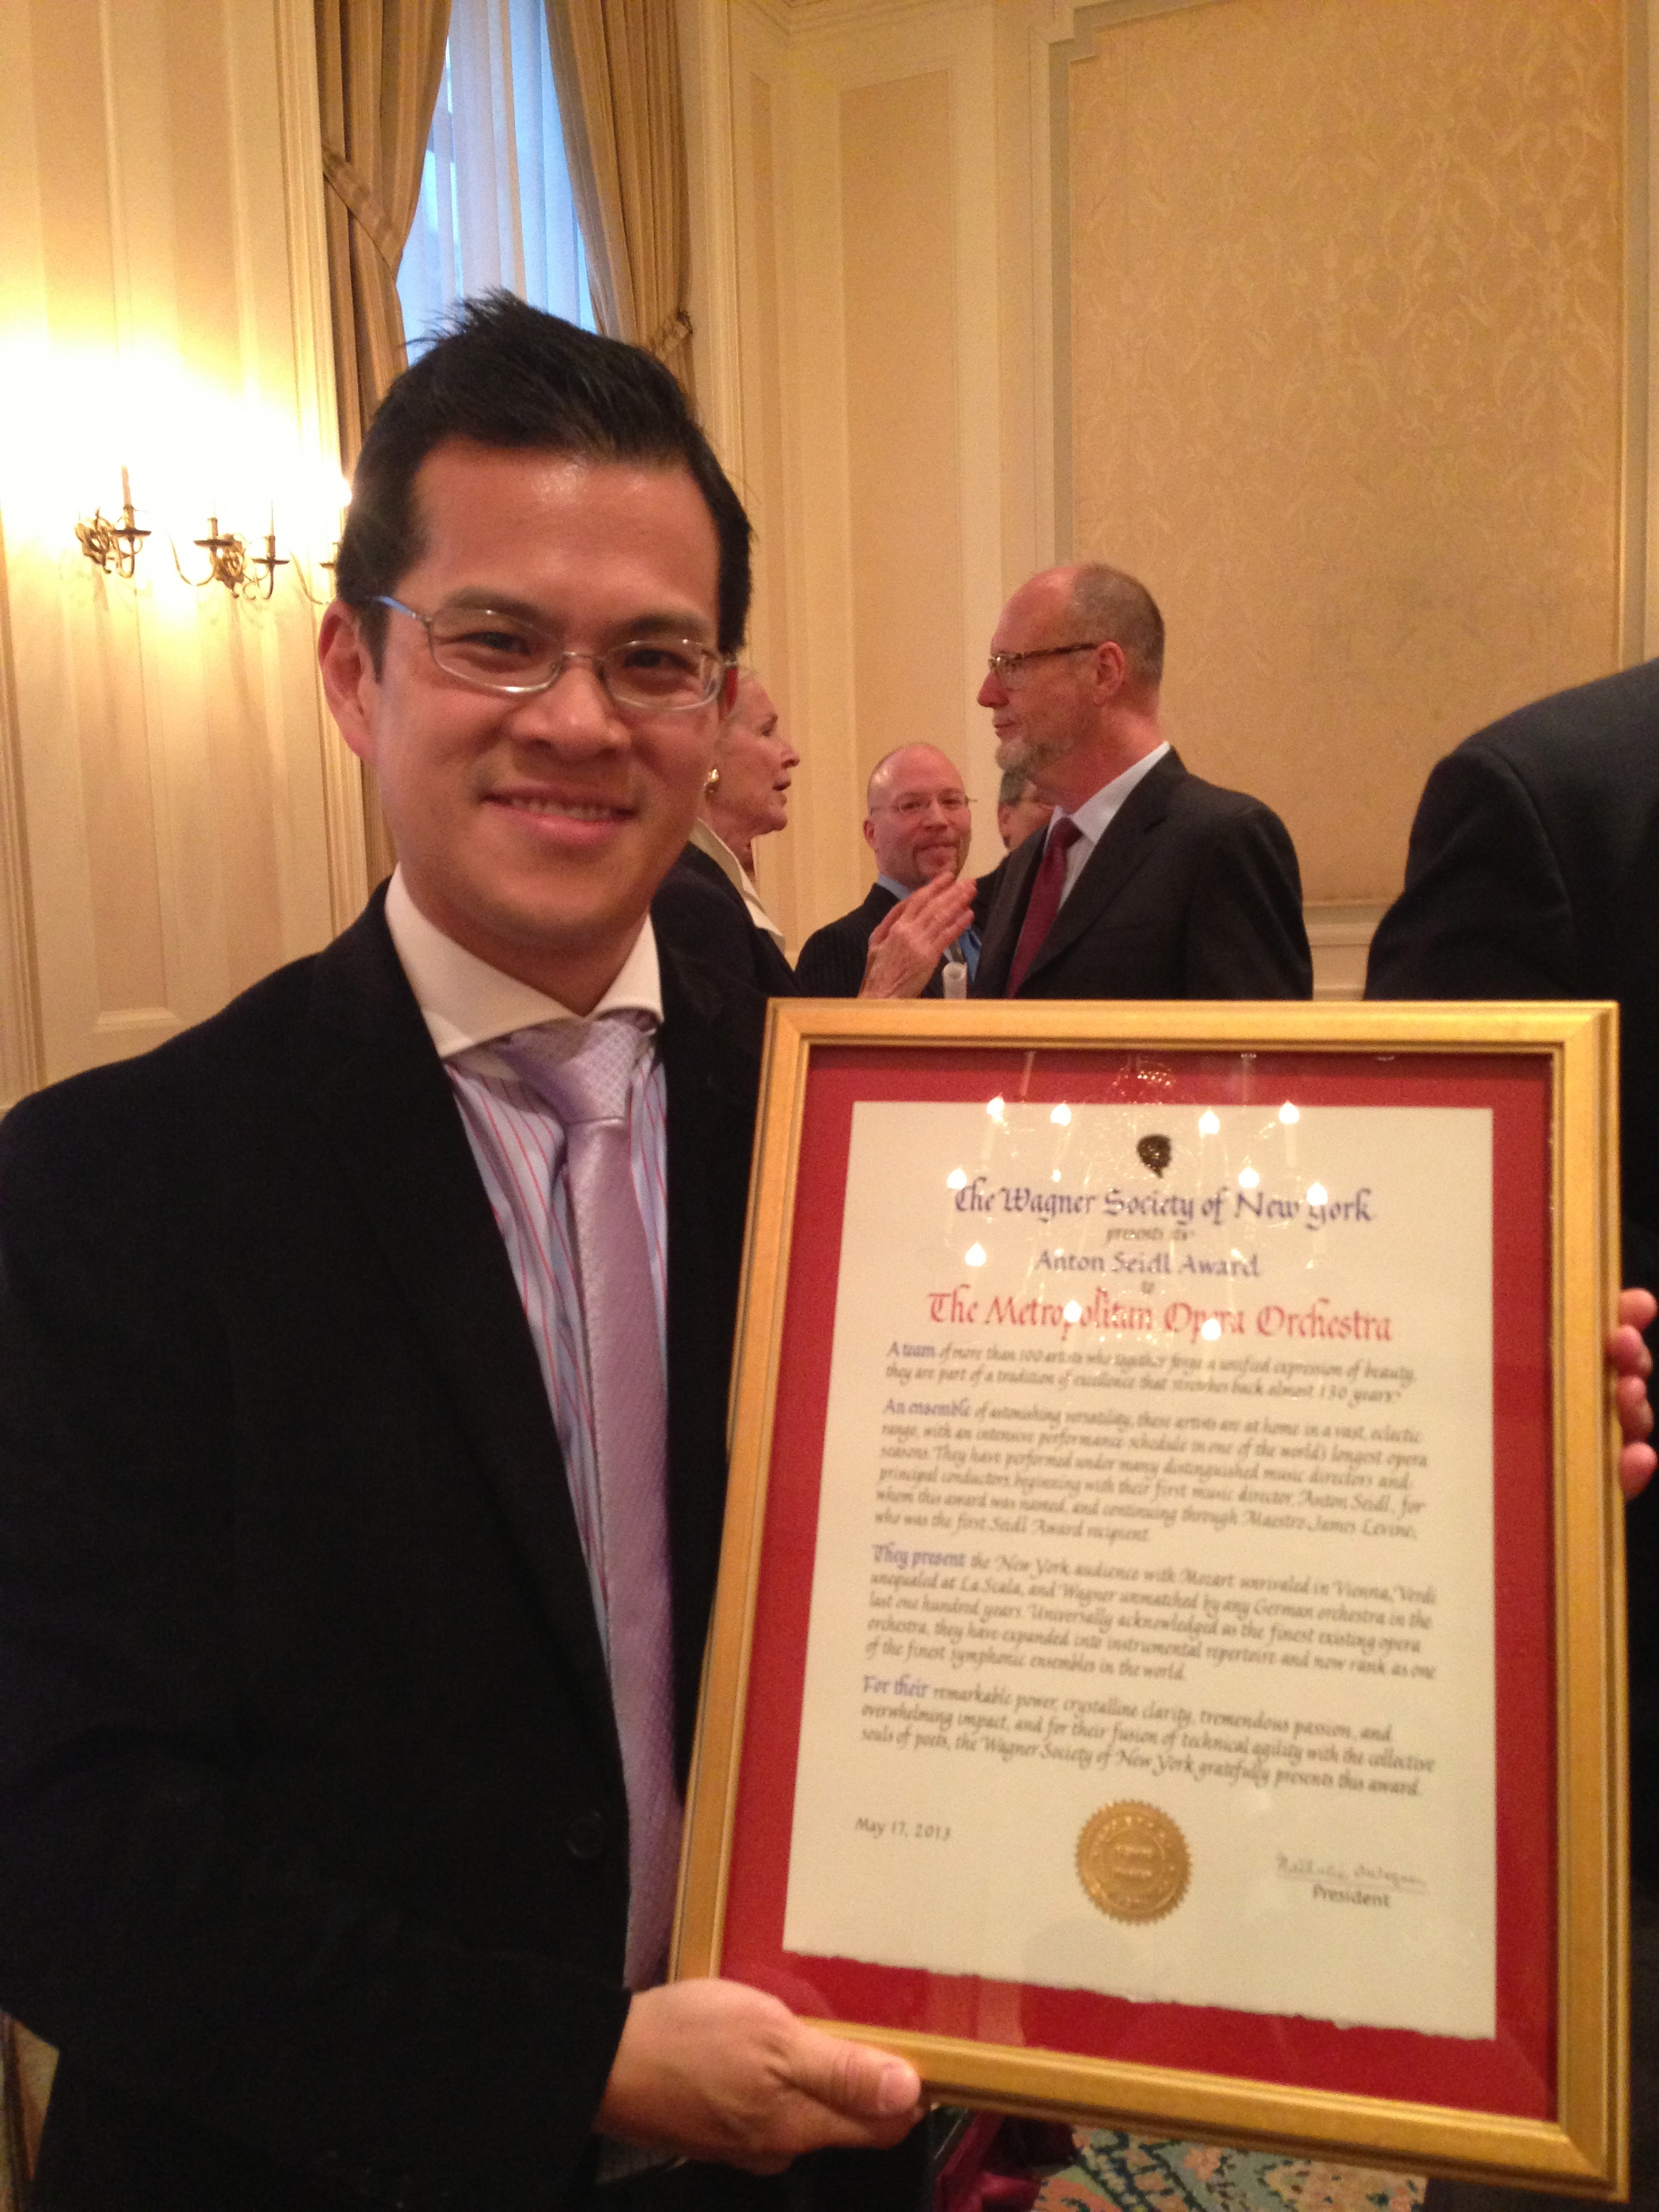 Concertmaster David Chan accepts the Anton Seidel award from the New York Wagner Society on behalf of the MET Orchestra.